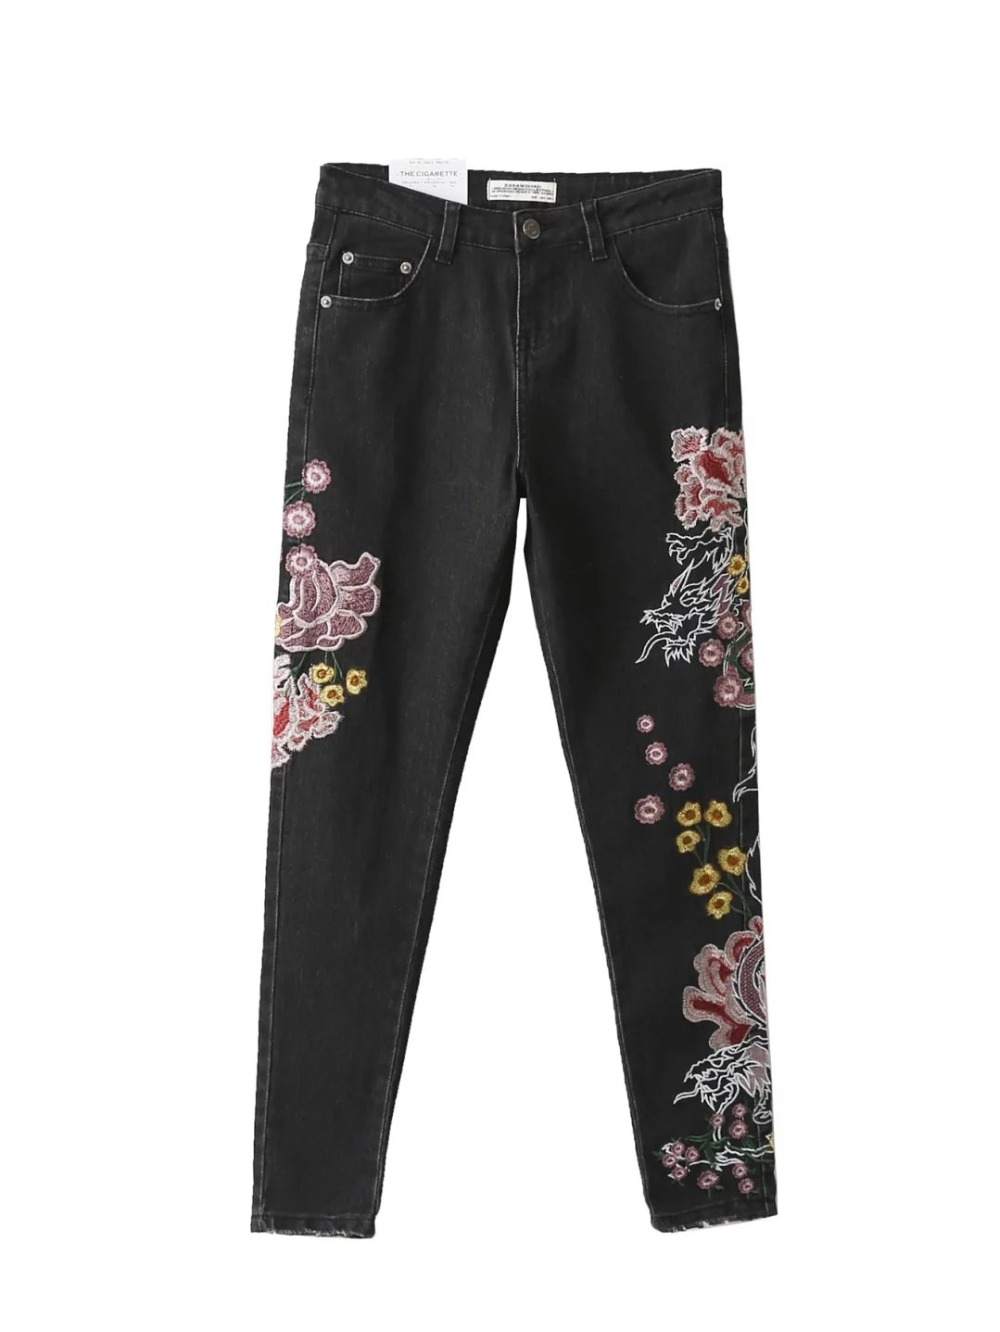 2017 Vintage Colorful Elastic Floral Chinese Dragon Embroidery Washed Denim Jeans Pockets Pants Casual Women Black Trousers Одежда и ак�е��уары<br><br><br>Aliexpress